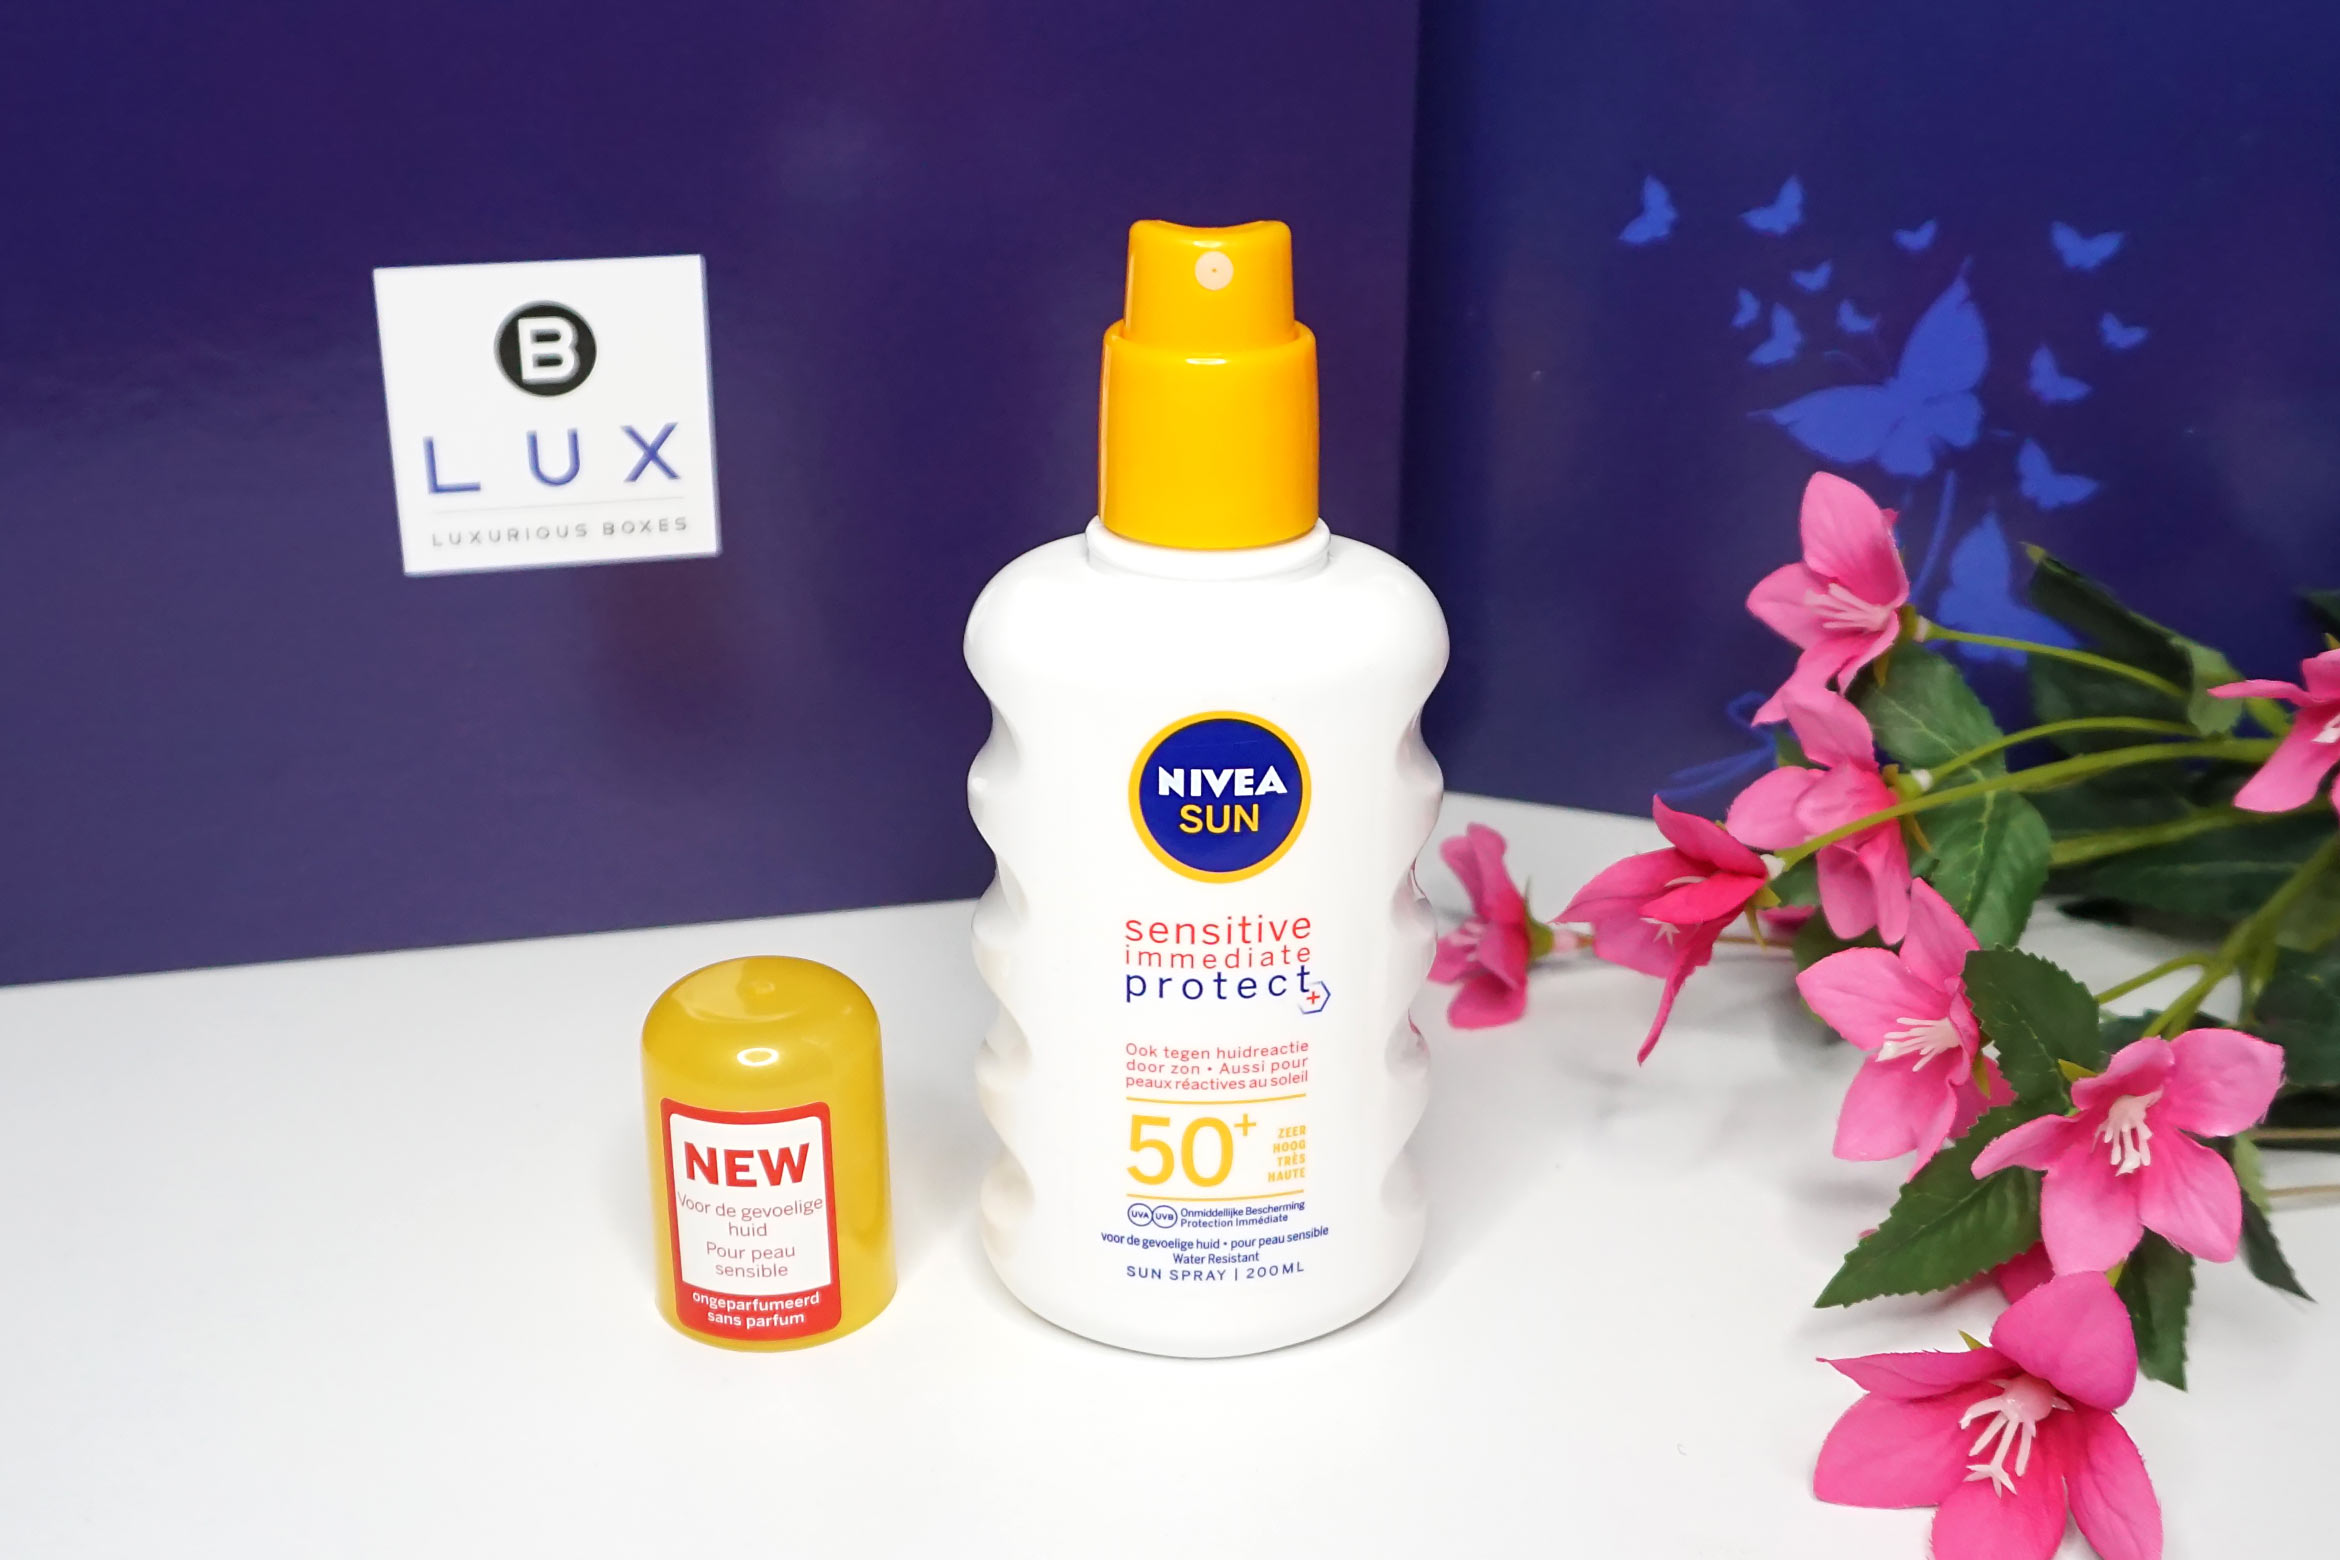 nivea-sun-sensitive-immediate-protect-review